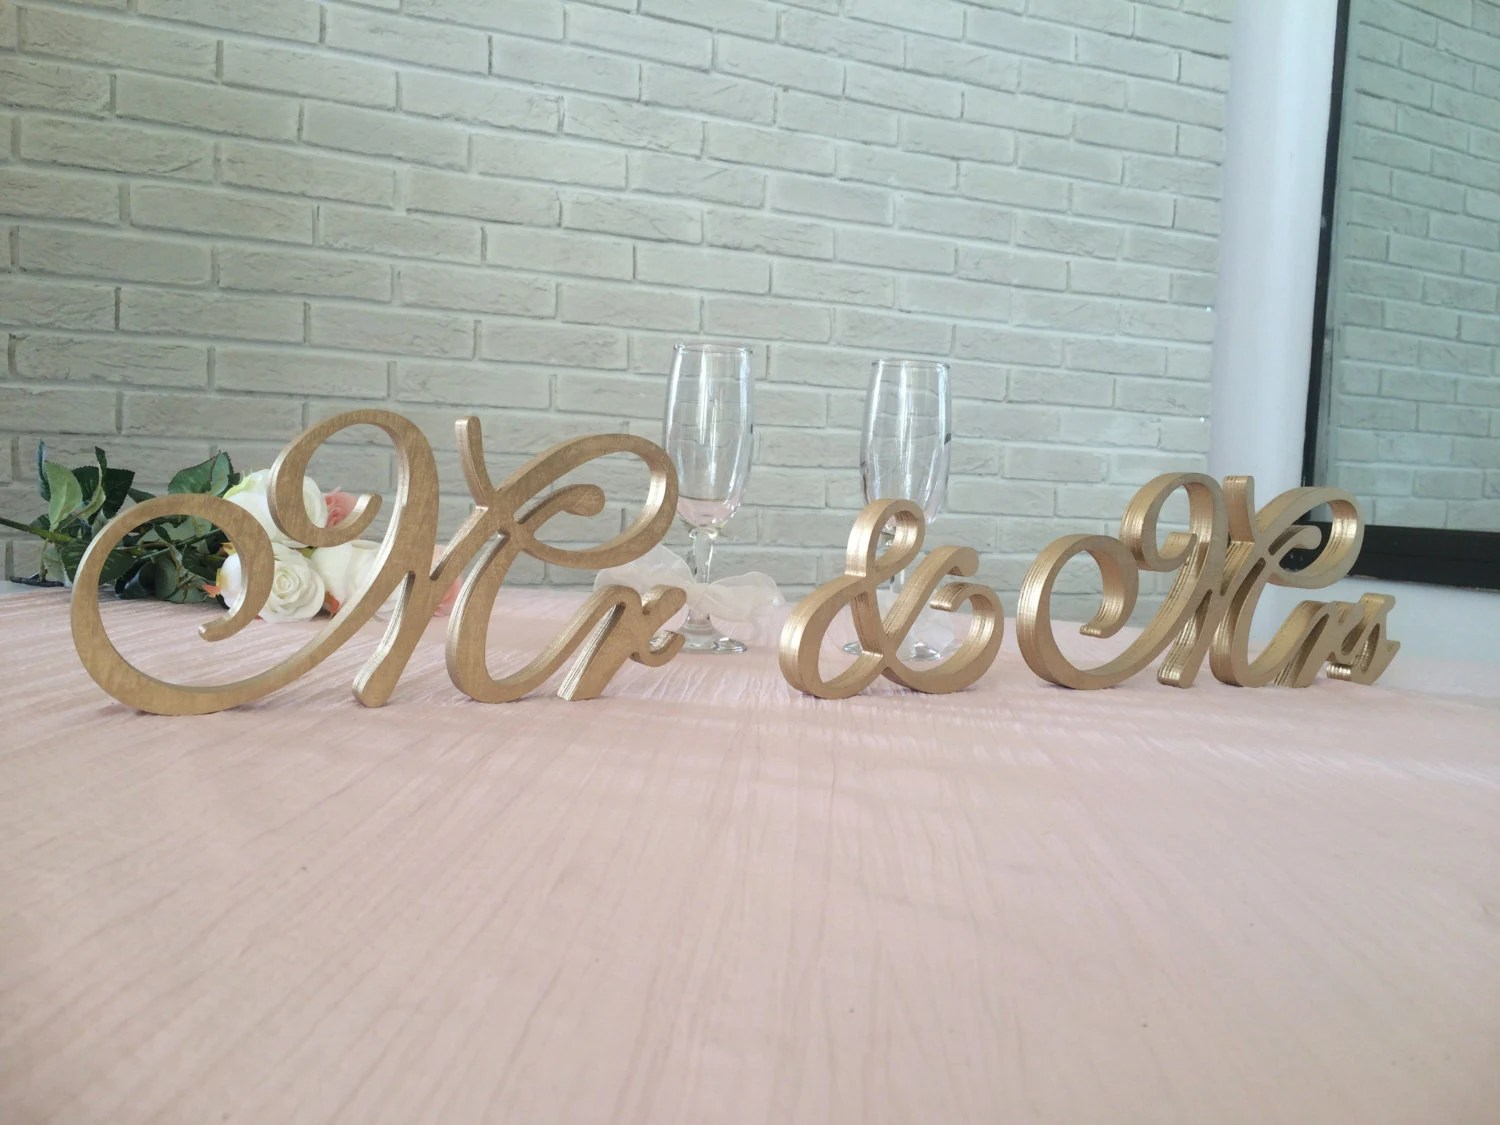 GOLD Mr. & Mrs. Wooden Freestanding Letters Top Table